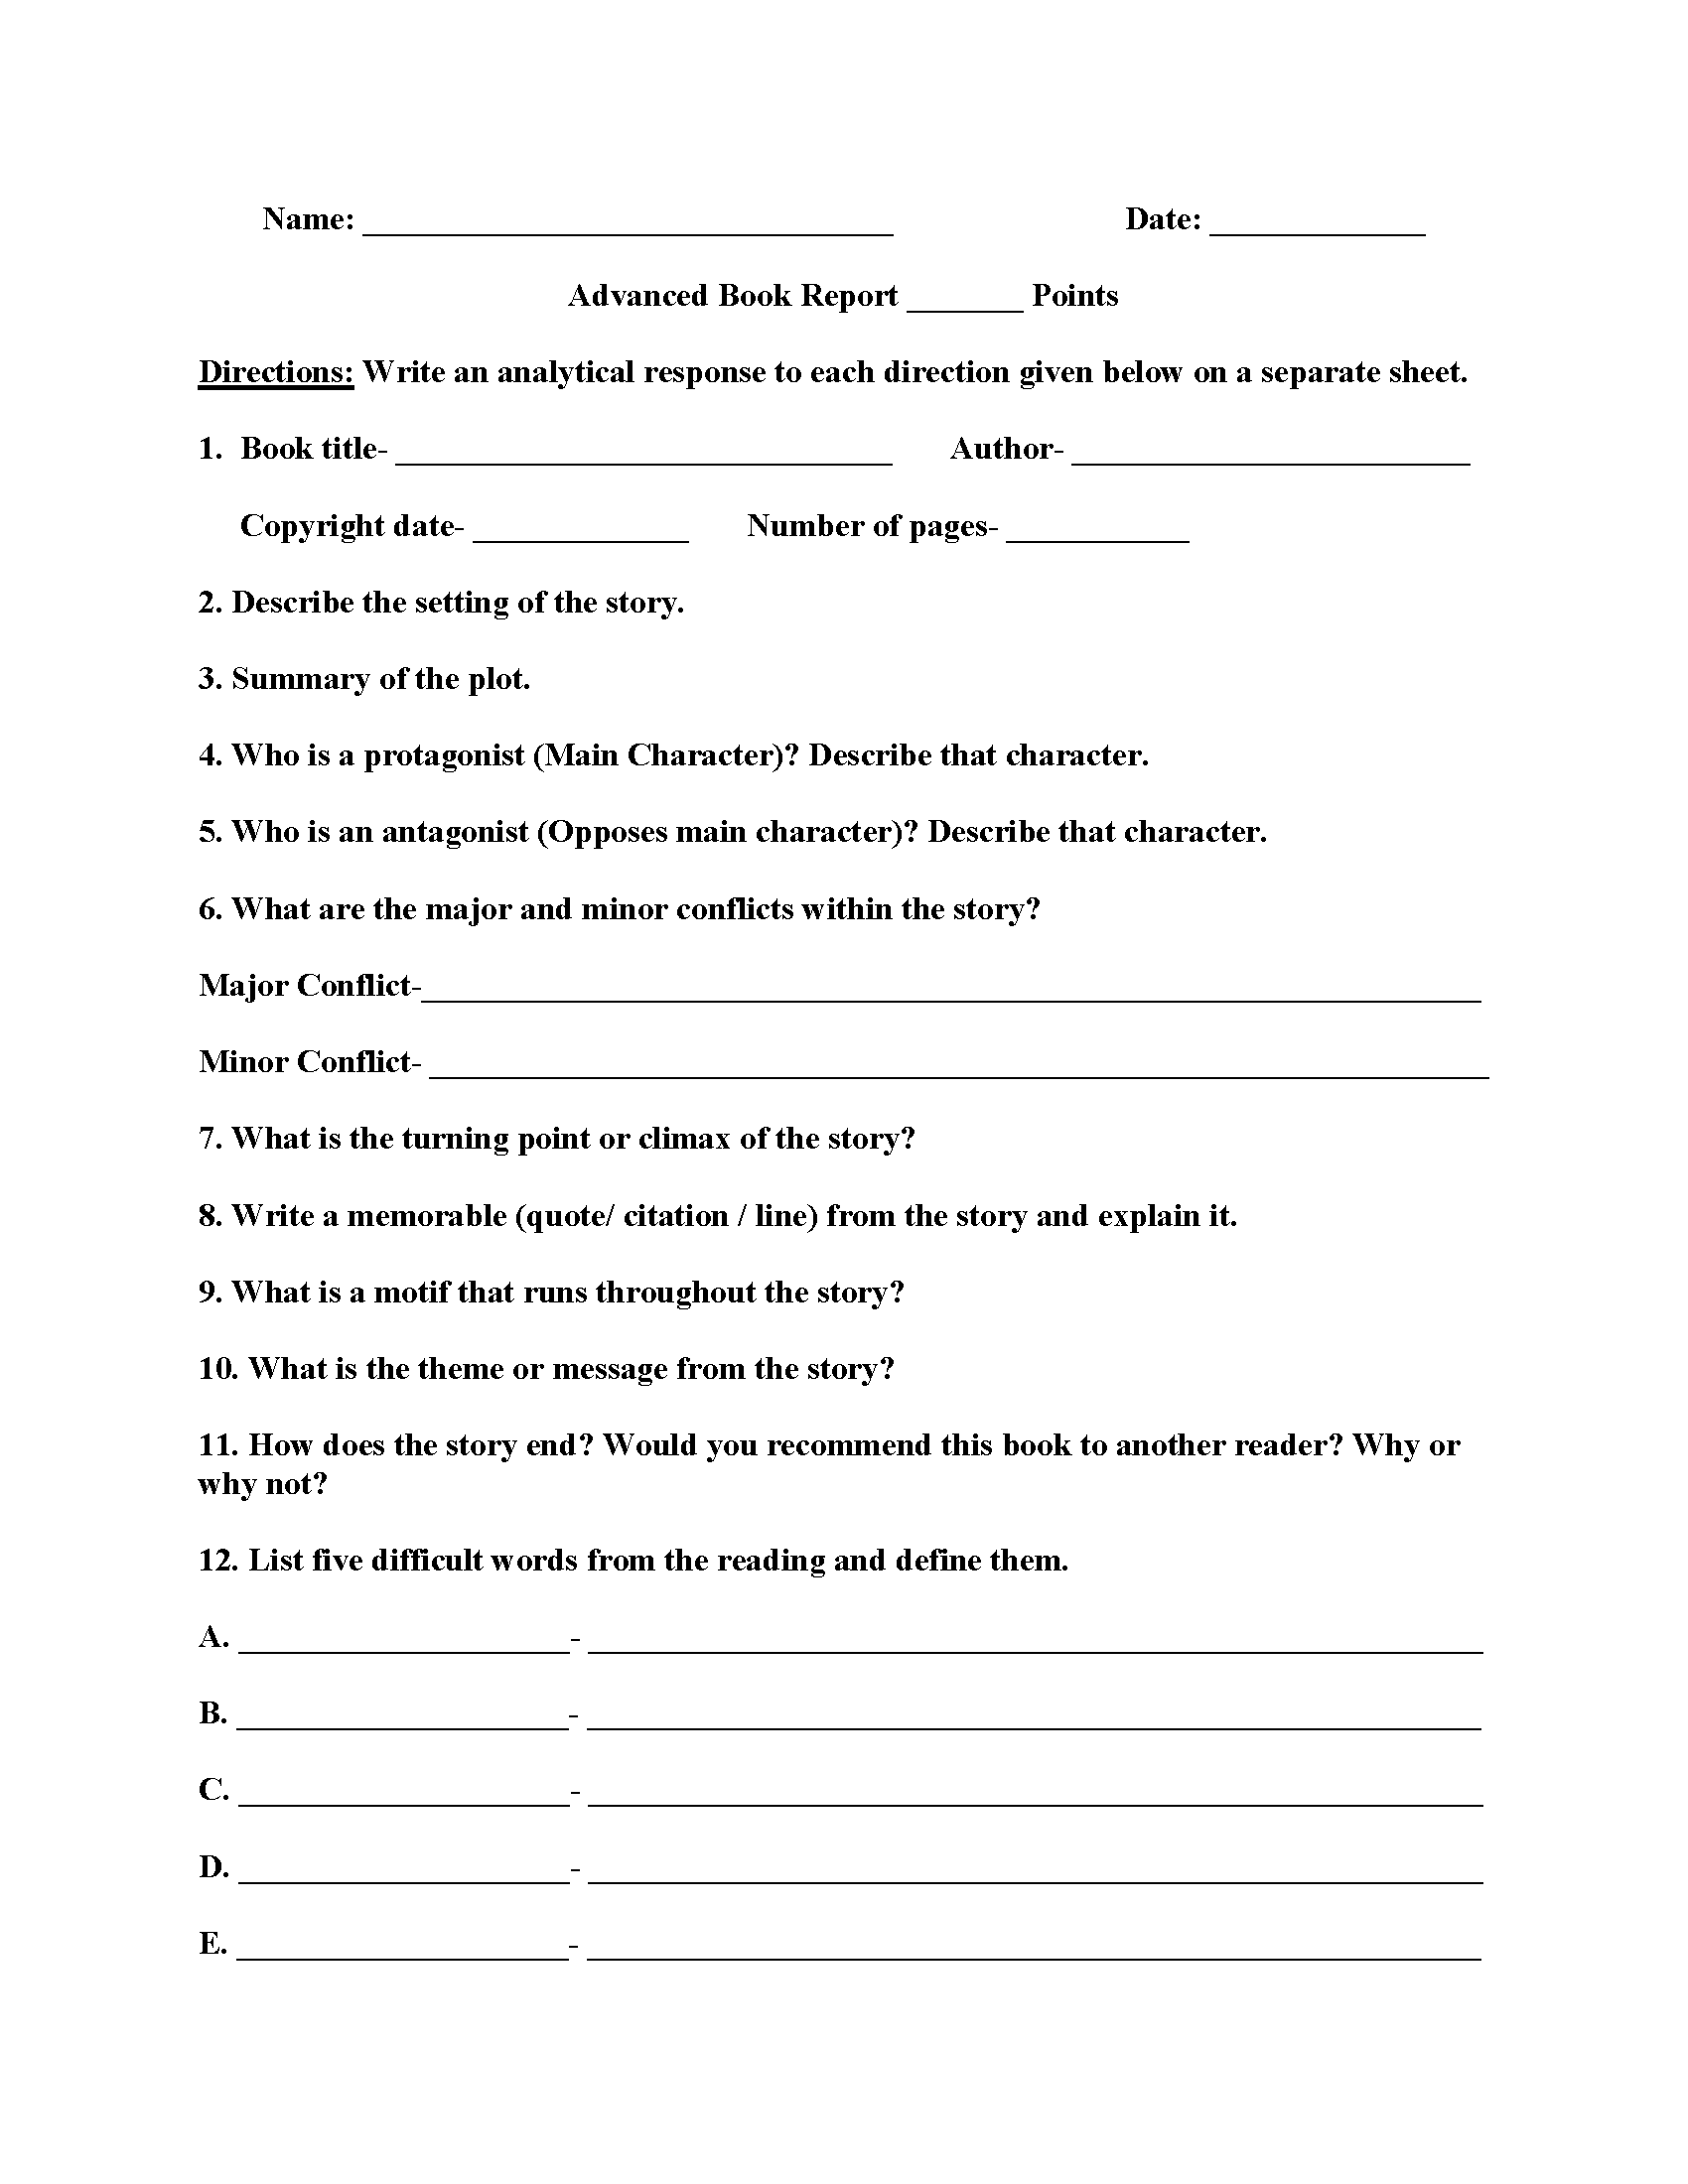 Free book report templates for third grade